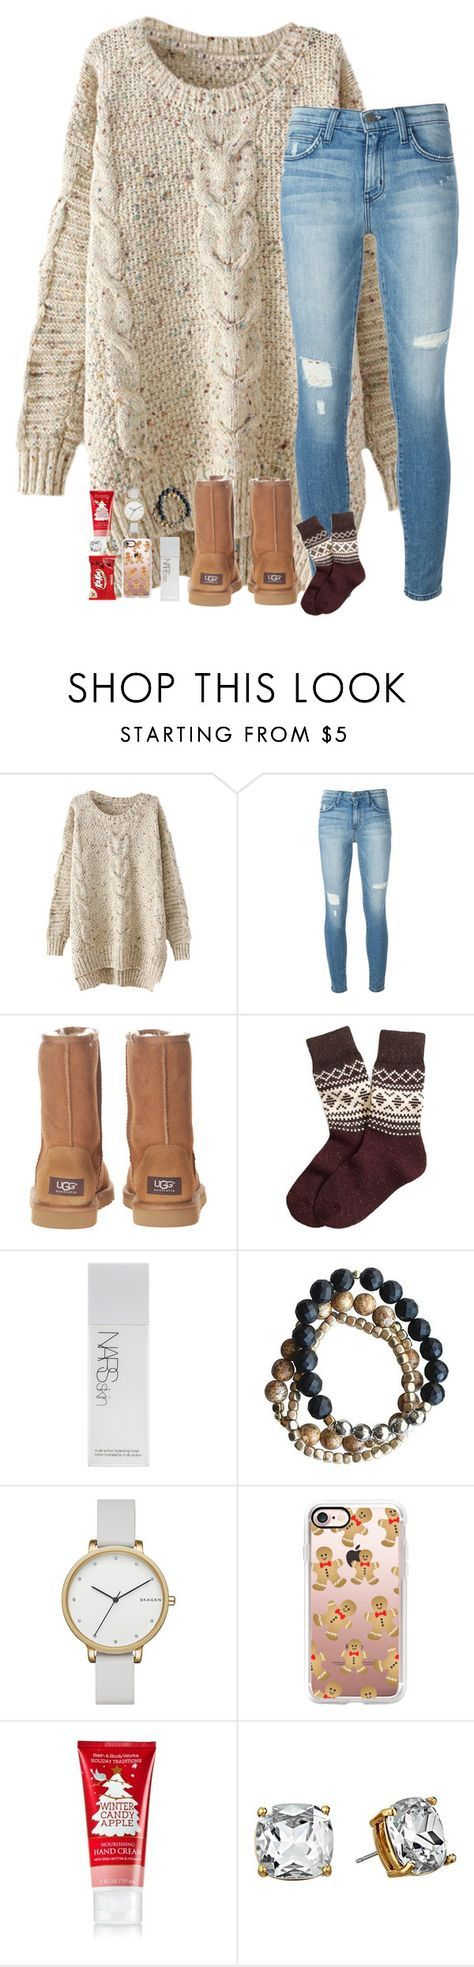 2 more days till break by hailstails ❤ liked on Polyvore featuring Current/Elliott, UGG Australia, Brooks Brothers, NARS Cosmetics, Skagen, Casetify and Kate Spade